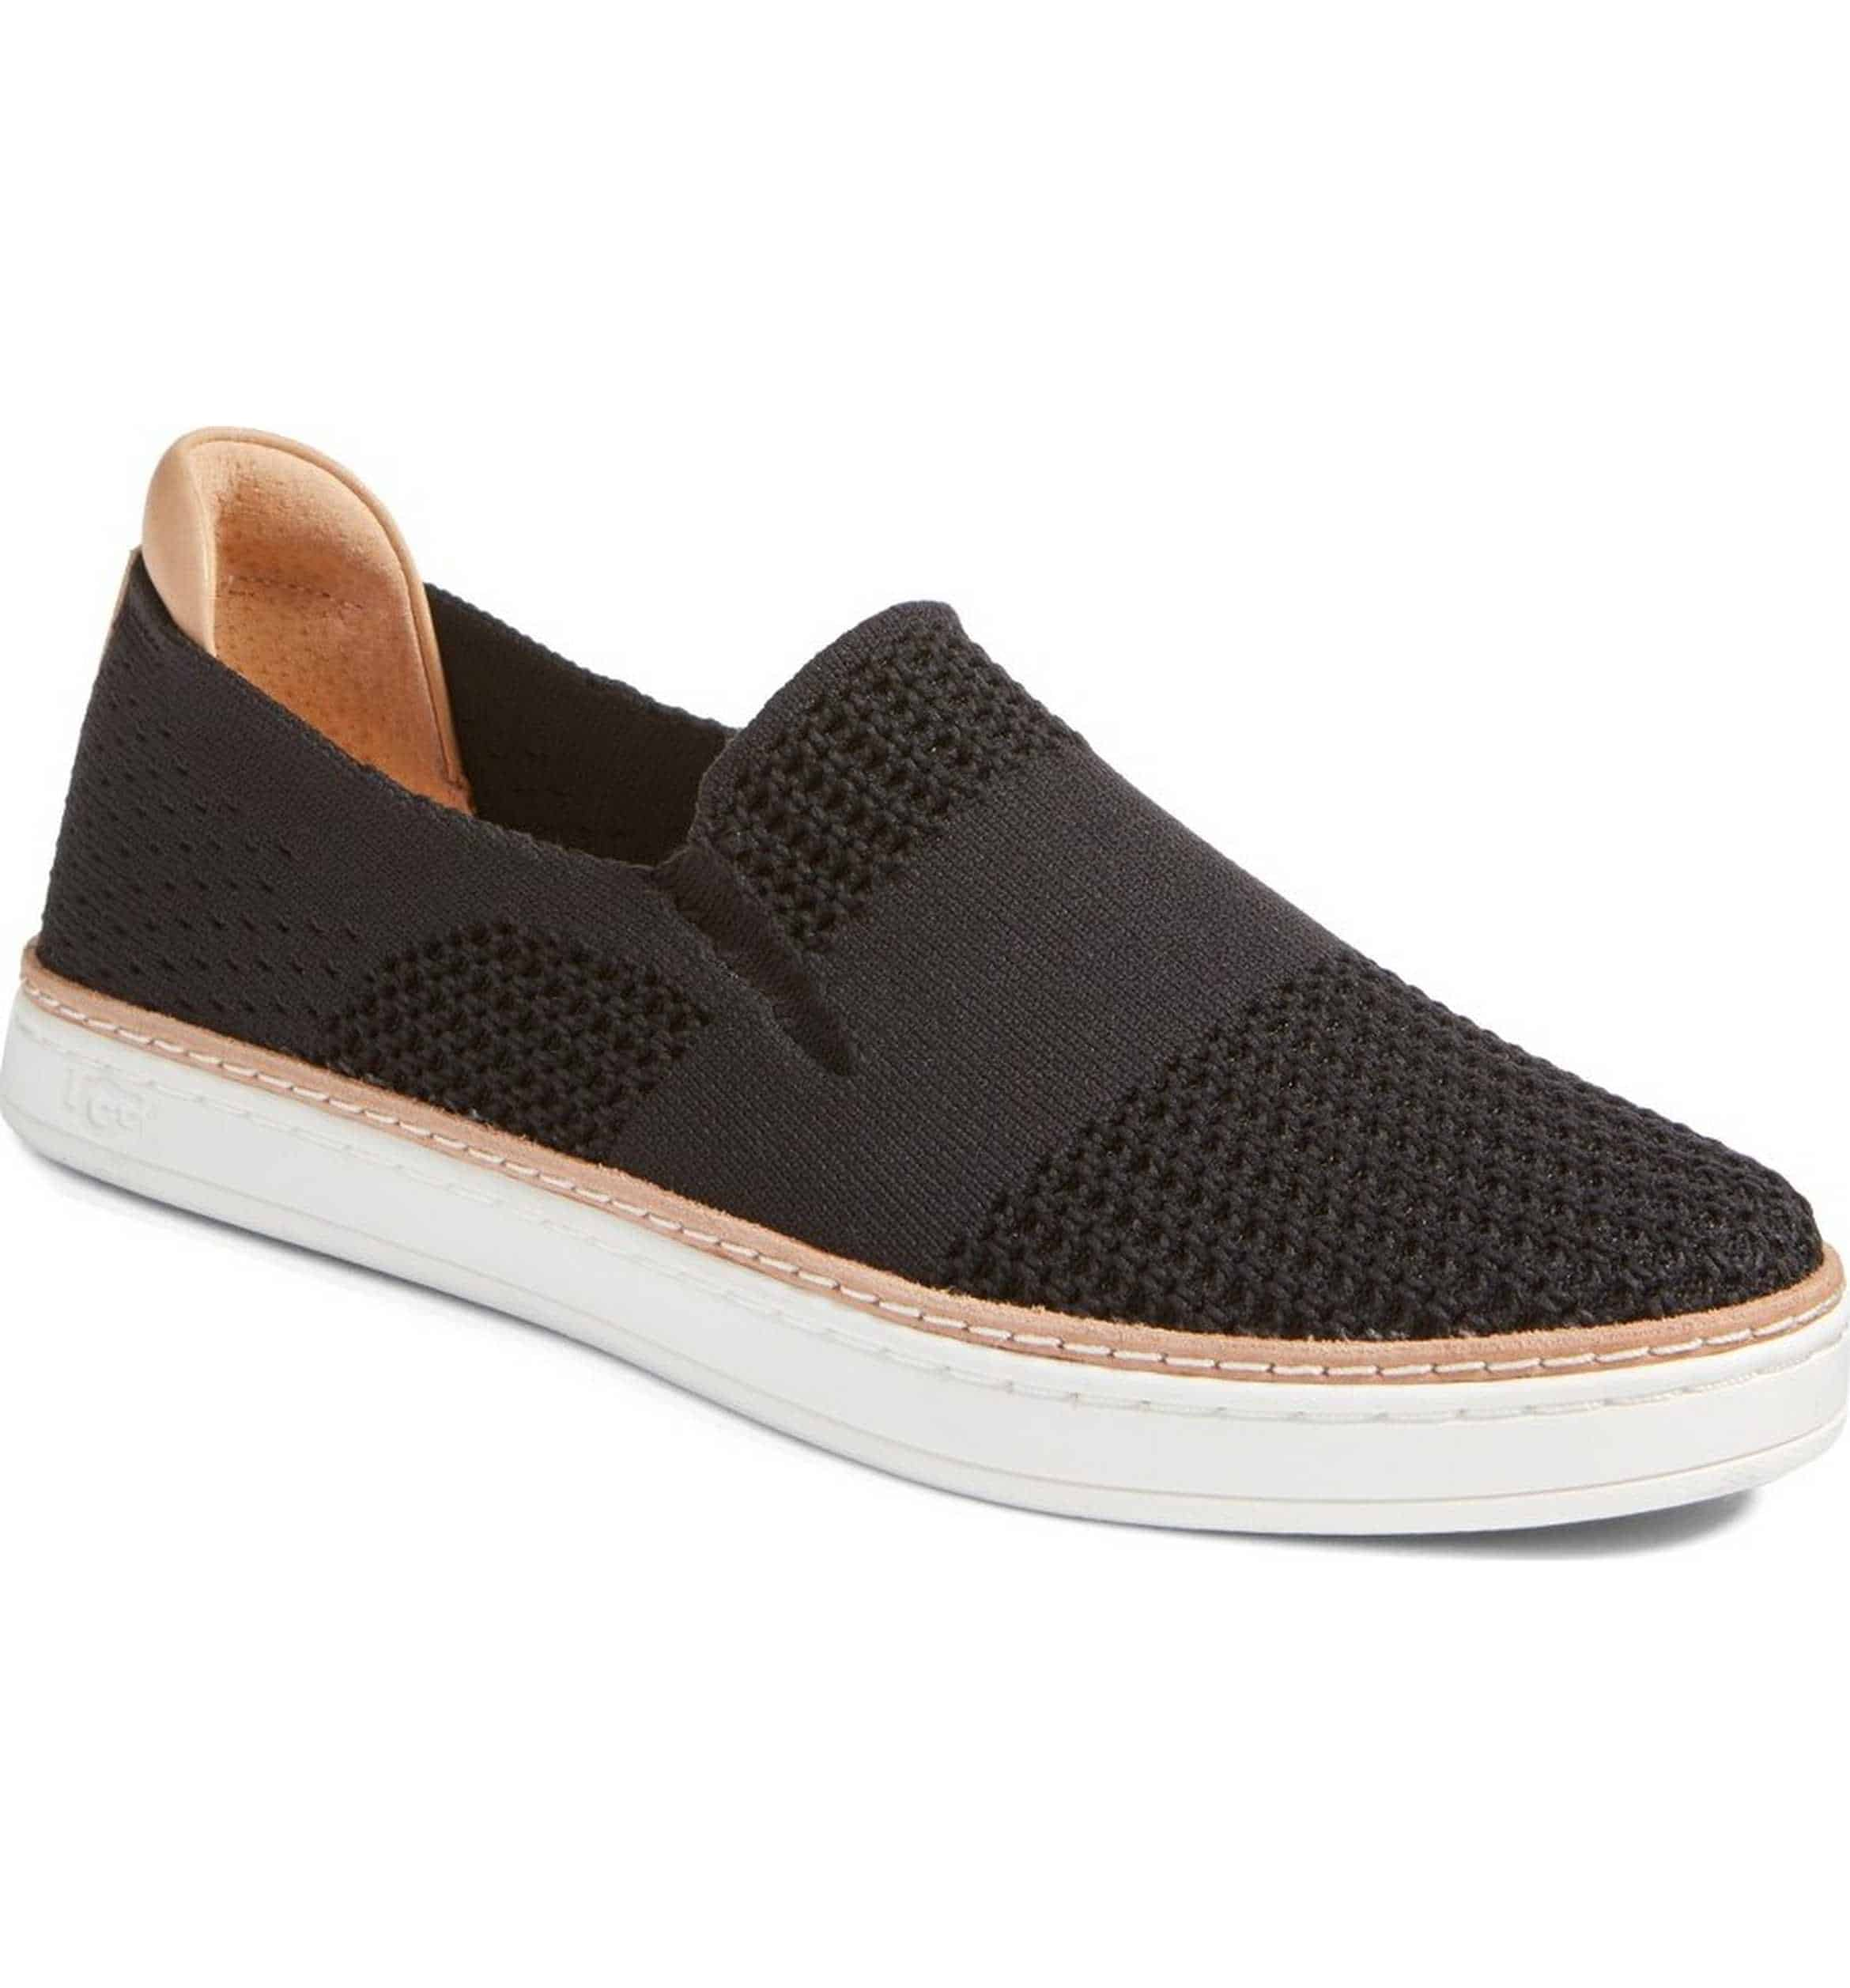 Sammy sneaker -- so comfortable and so stylin!